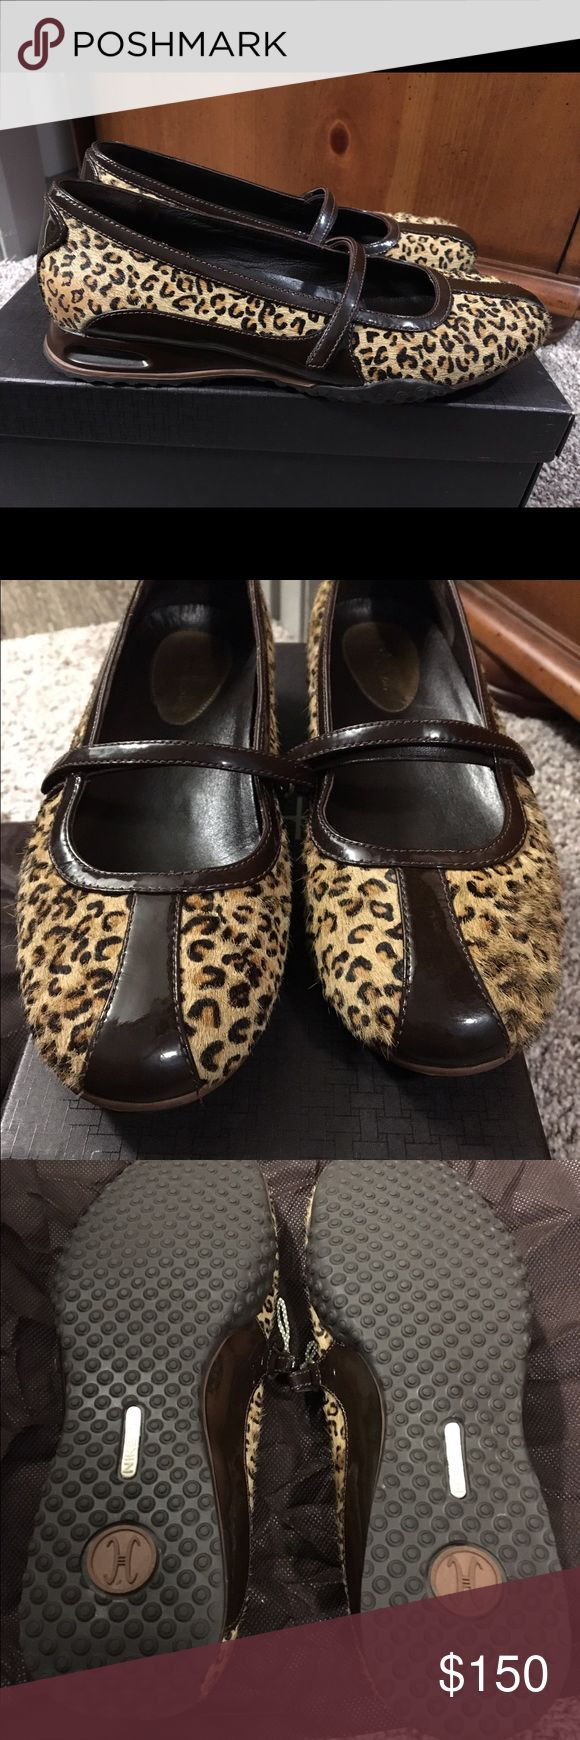 Cole Haan Leopard Print Nike Air MaryJane Shoes Cole Haan Leopard Print Nike Air MaryJane Shoes. These have been worn maybe twice. EXCELLENT condition and the most comfortable shoe I have. I have several pairs of this exact shoe in different colors but just never wear these so want someone else to enjoy them. They have Nike Air Soles. Cole Haan Shoes Flats & Loafers